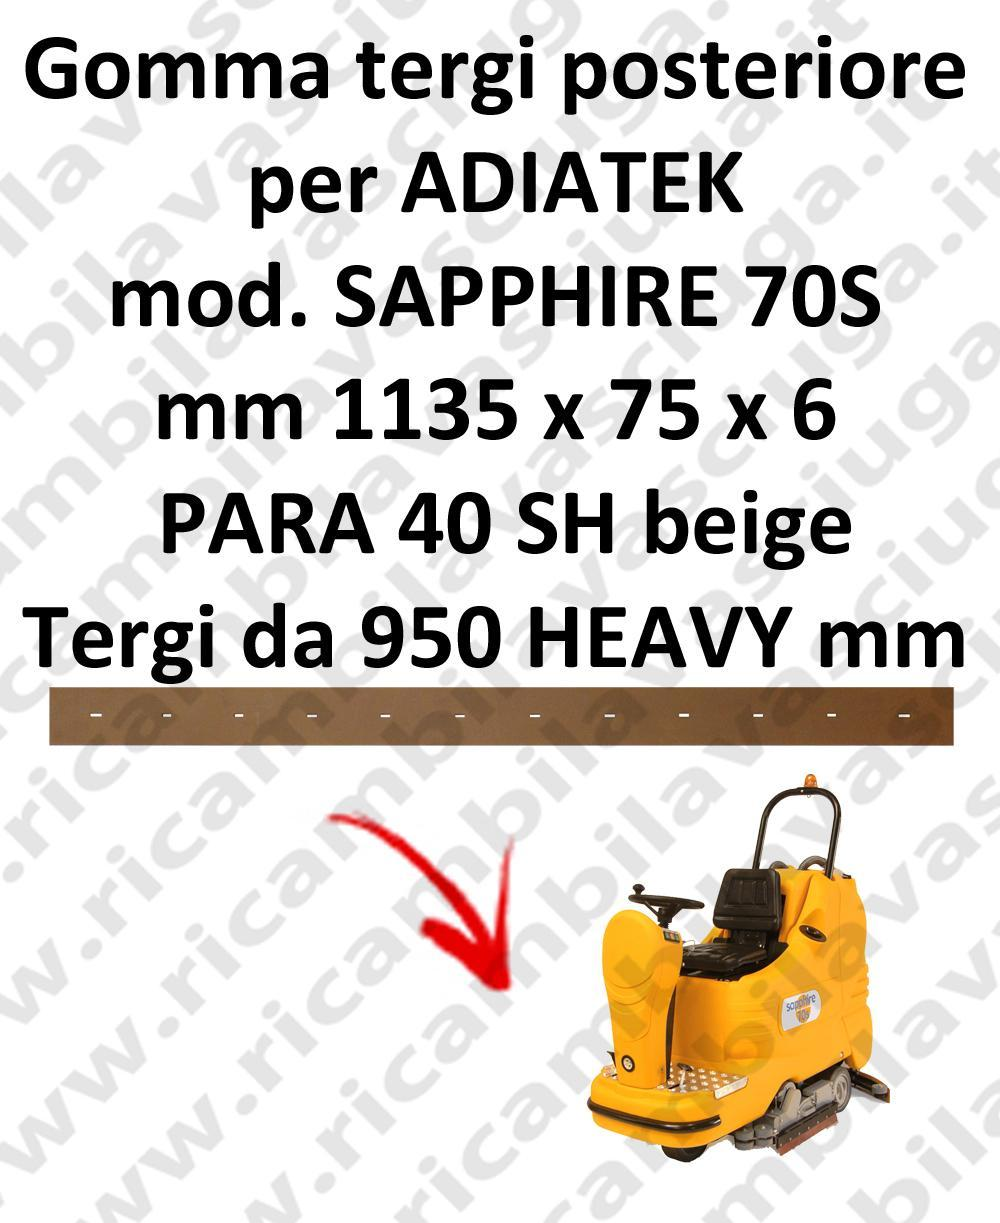 SAPHHIRE 70S Back Squeegee rubber for squeegee ADIATEK (squeegee length 950 mm)